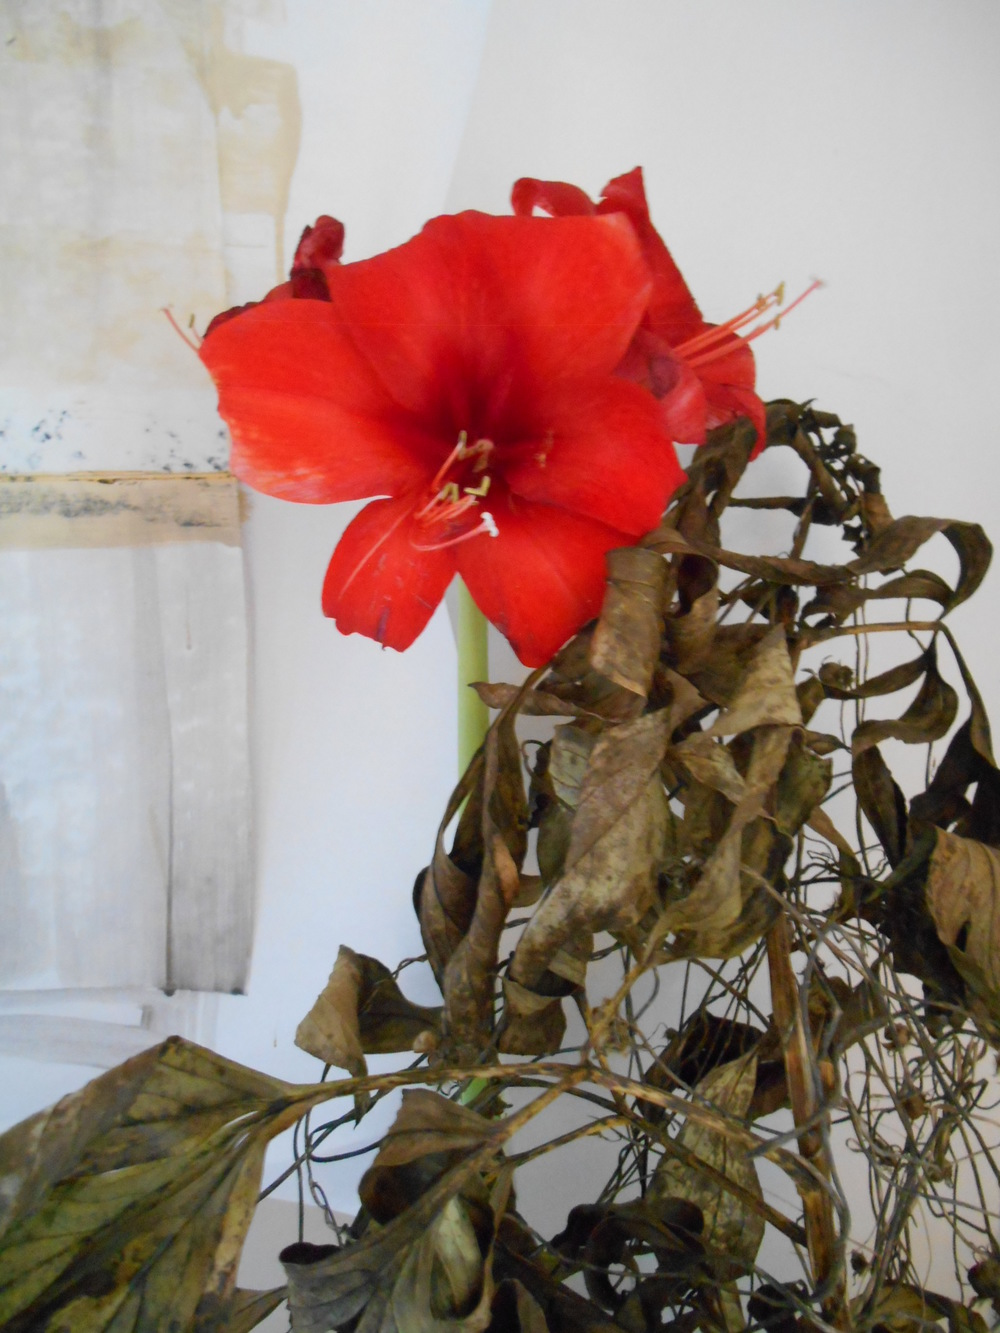 Amaryllis jan 2016 004.JPG